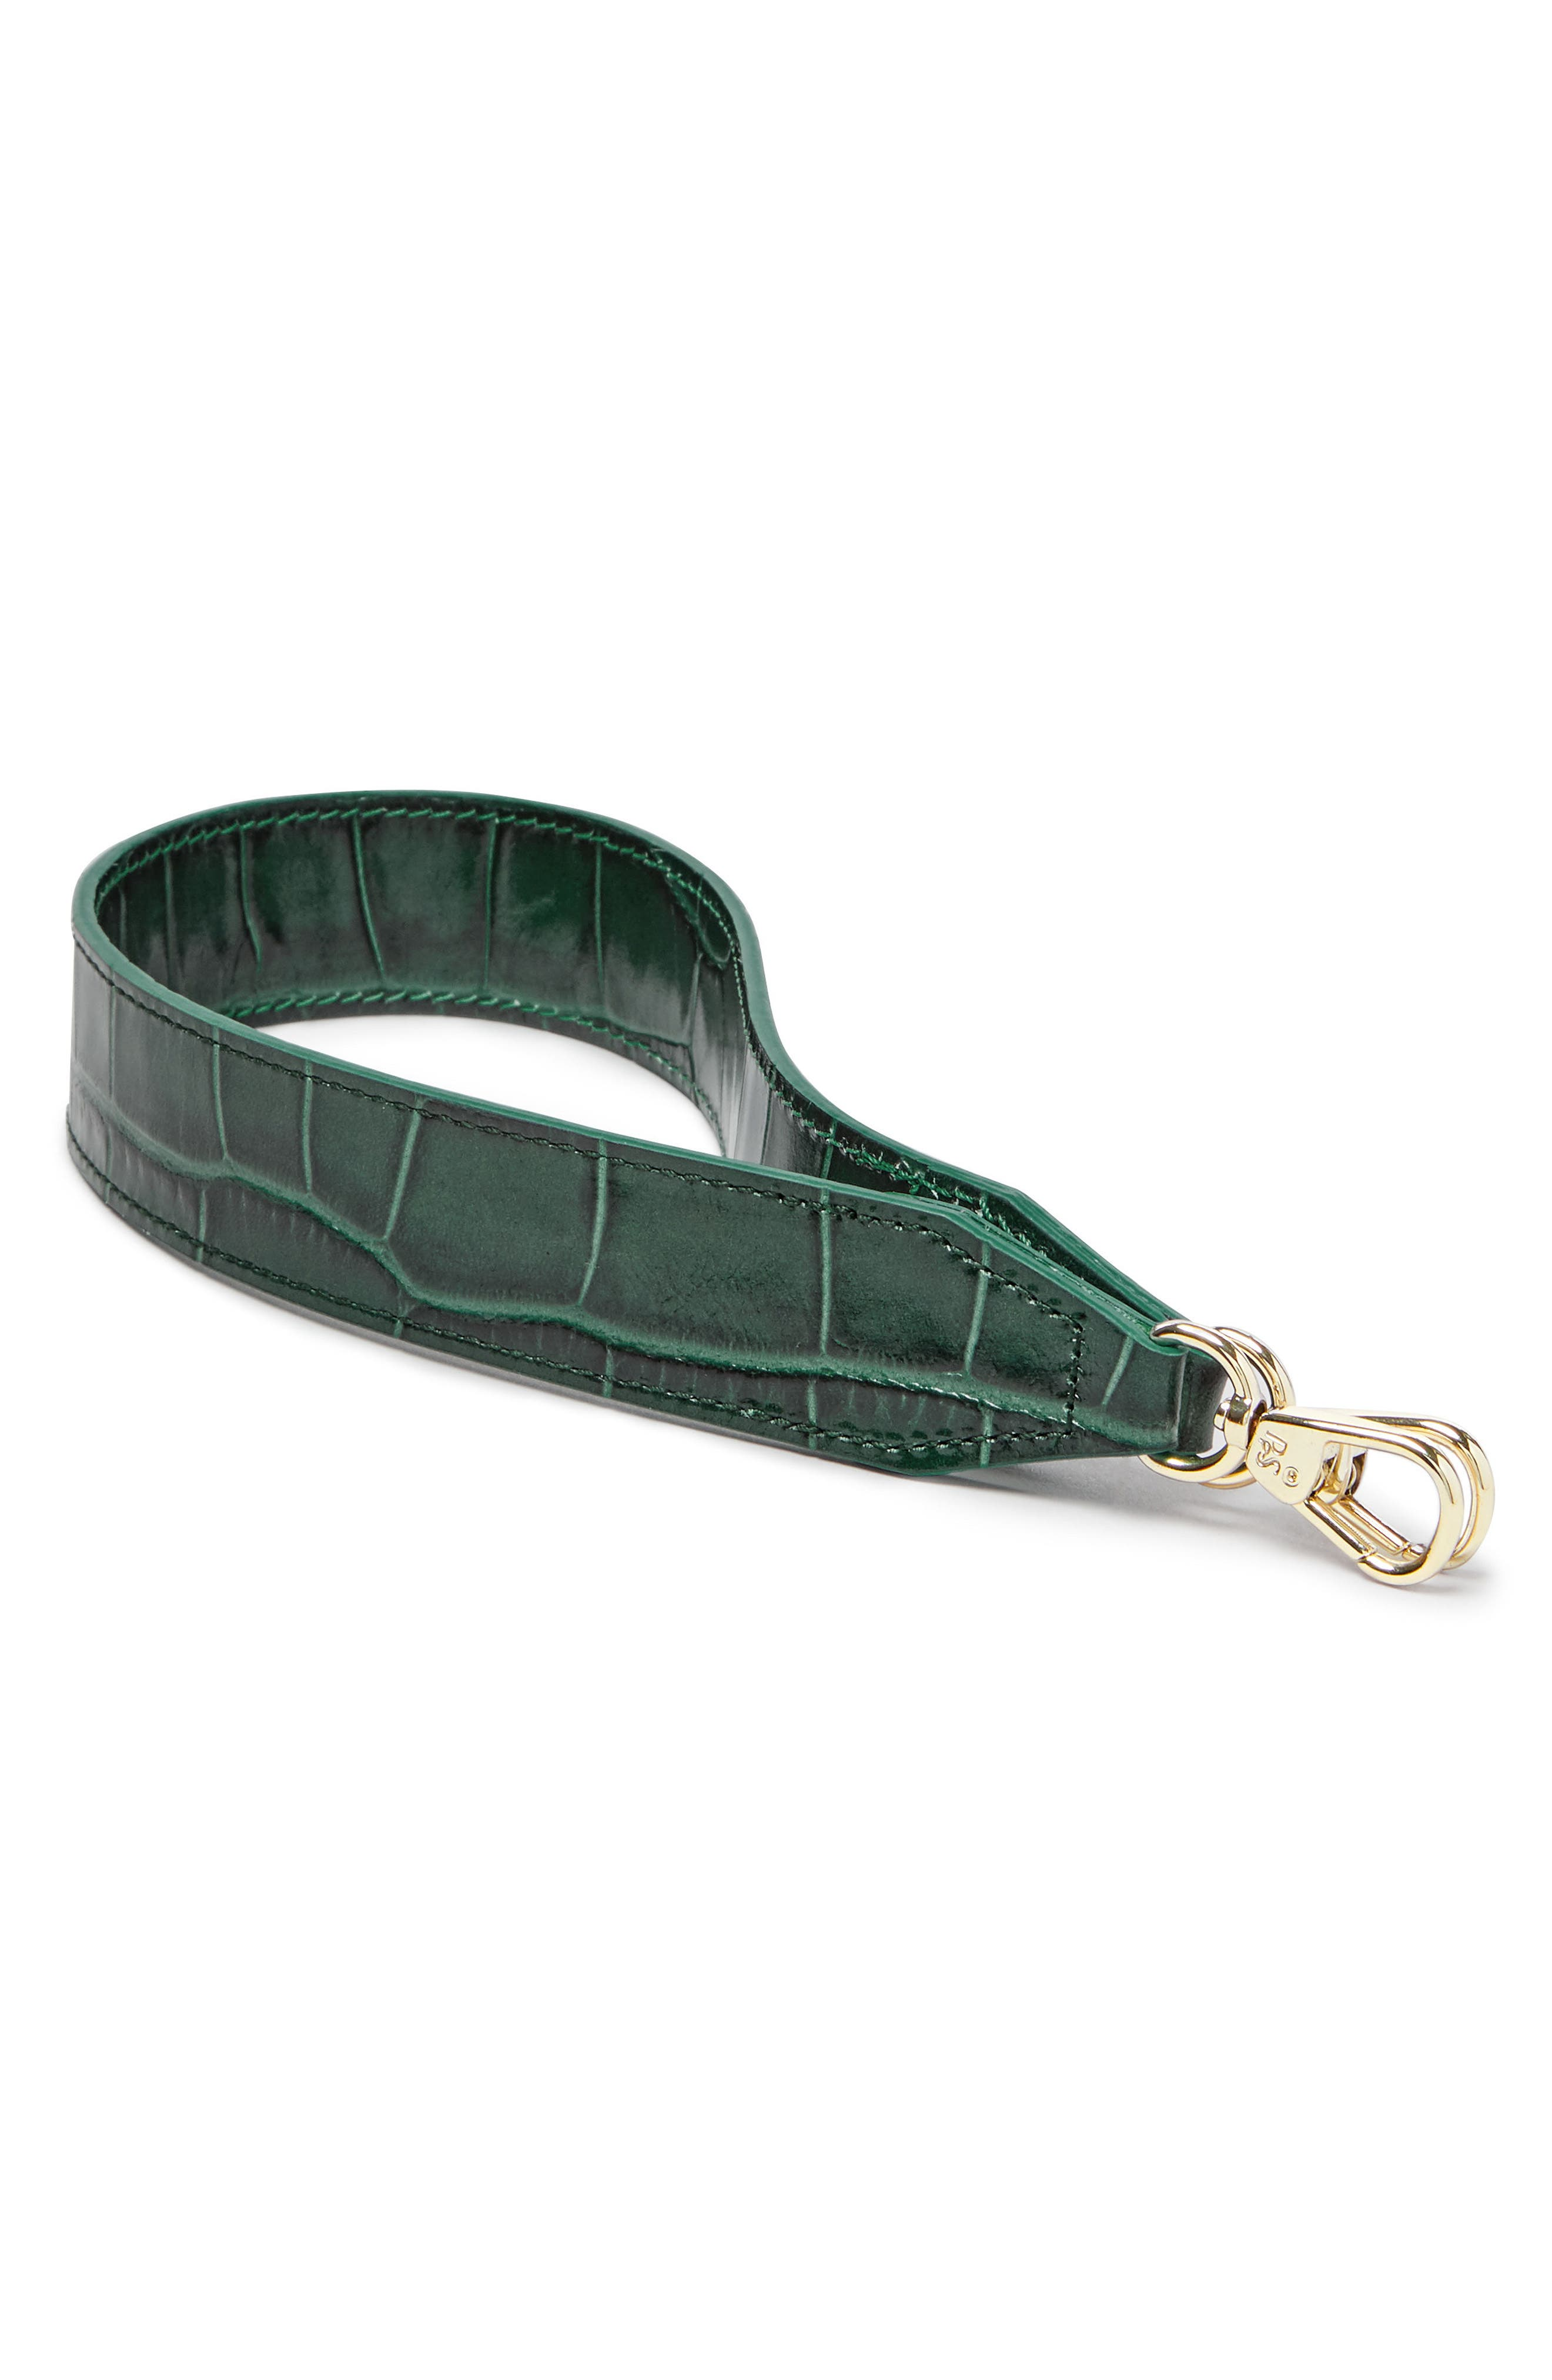 Croc Embossed Short Wide Strap,                             Main thumbnail 1, color,                             Emerald